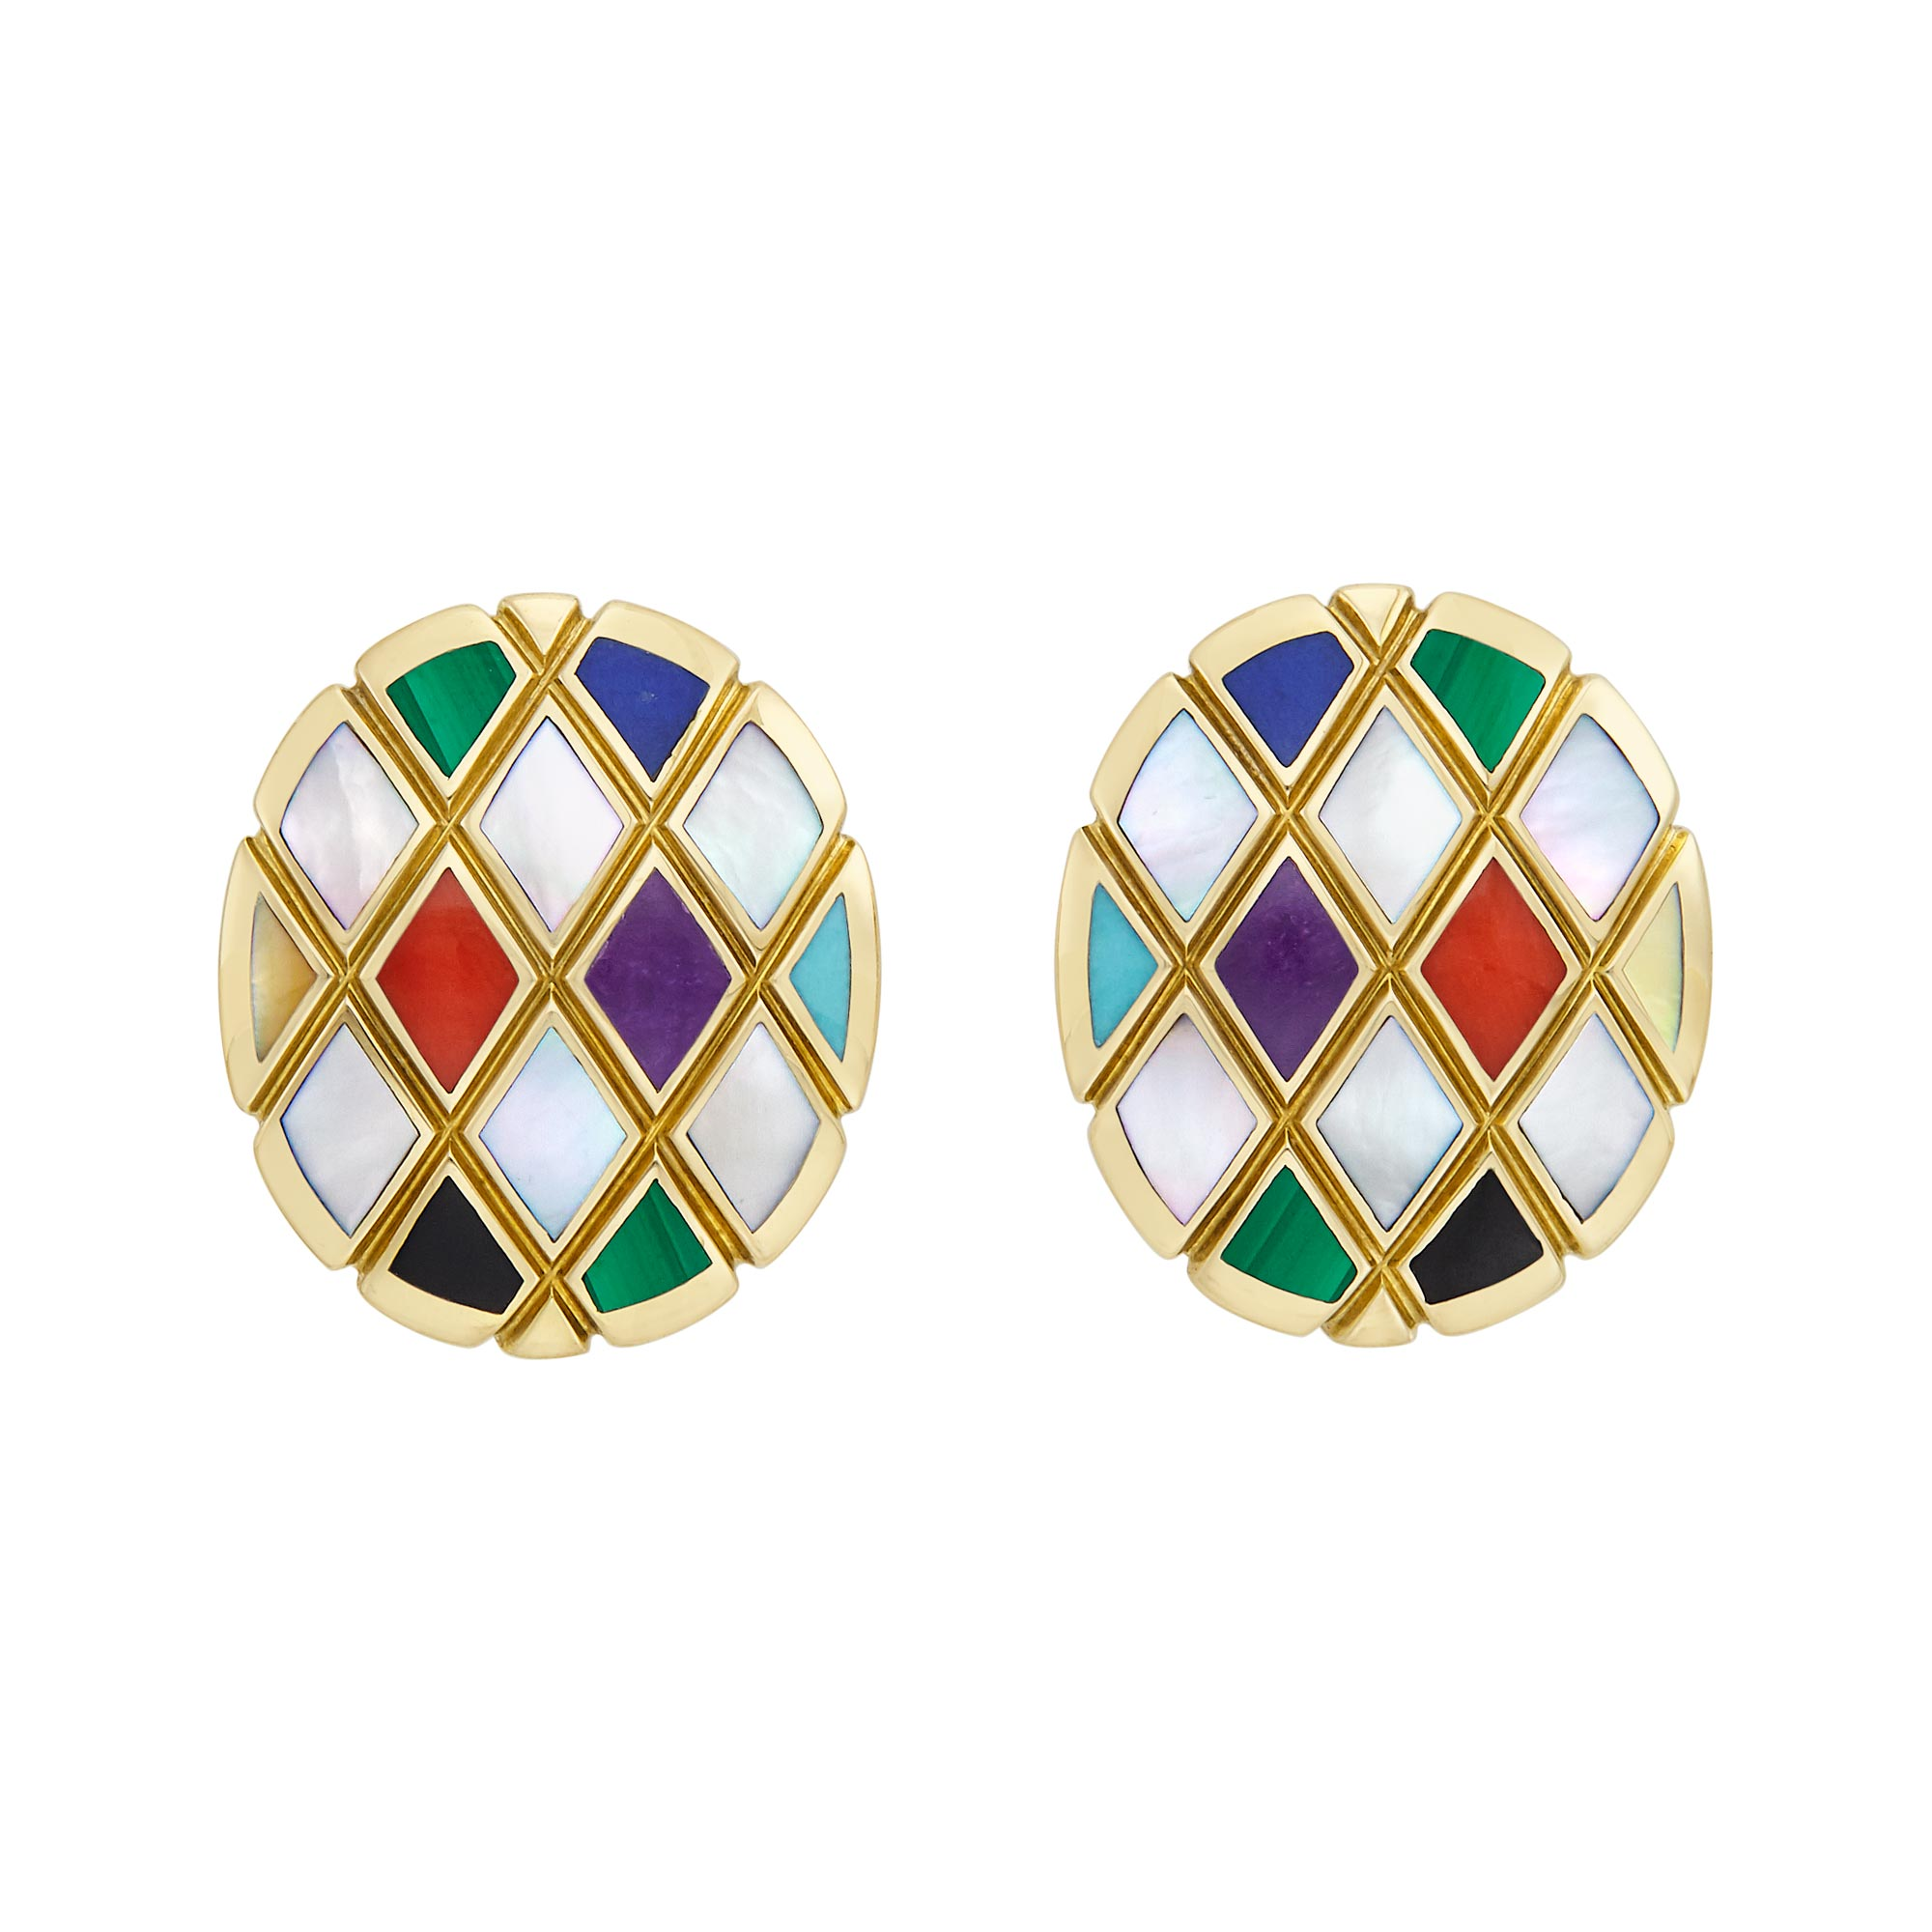 Lot image - Pair of Gold, Mother-of-Pearl and Hardstone Earrings, Asch Grossbardt